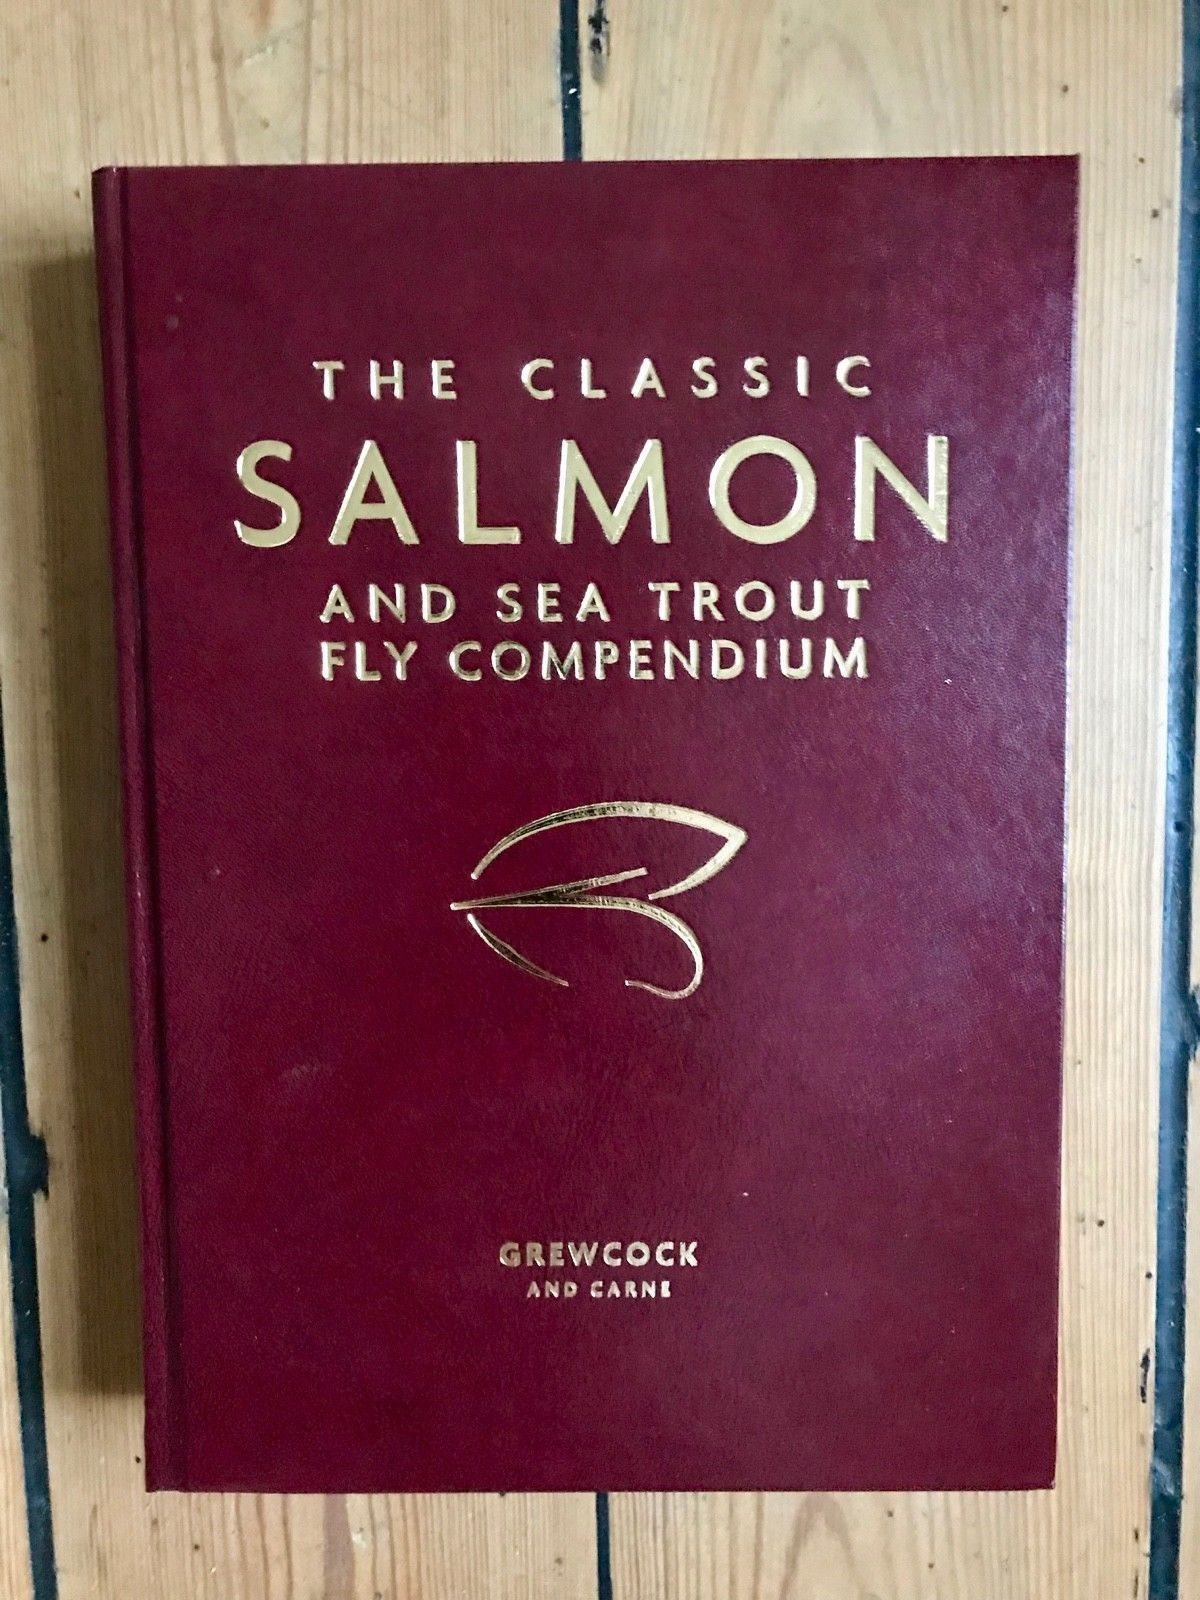 FLUGFISKE FLUGBINDNING_THE CLASSIC SALMON AND SEATROUT FLY COMPENDIUM